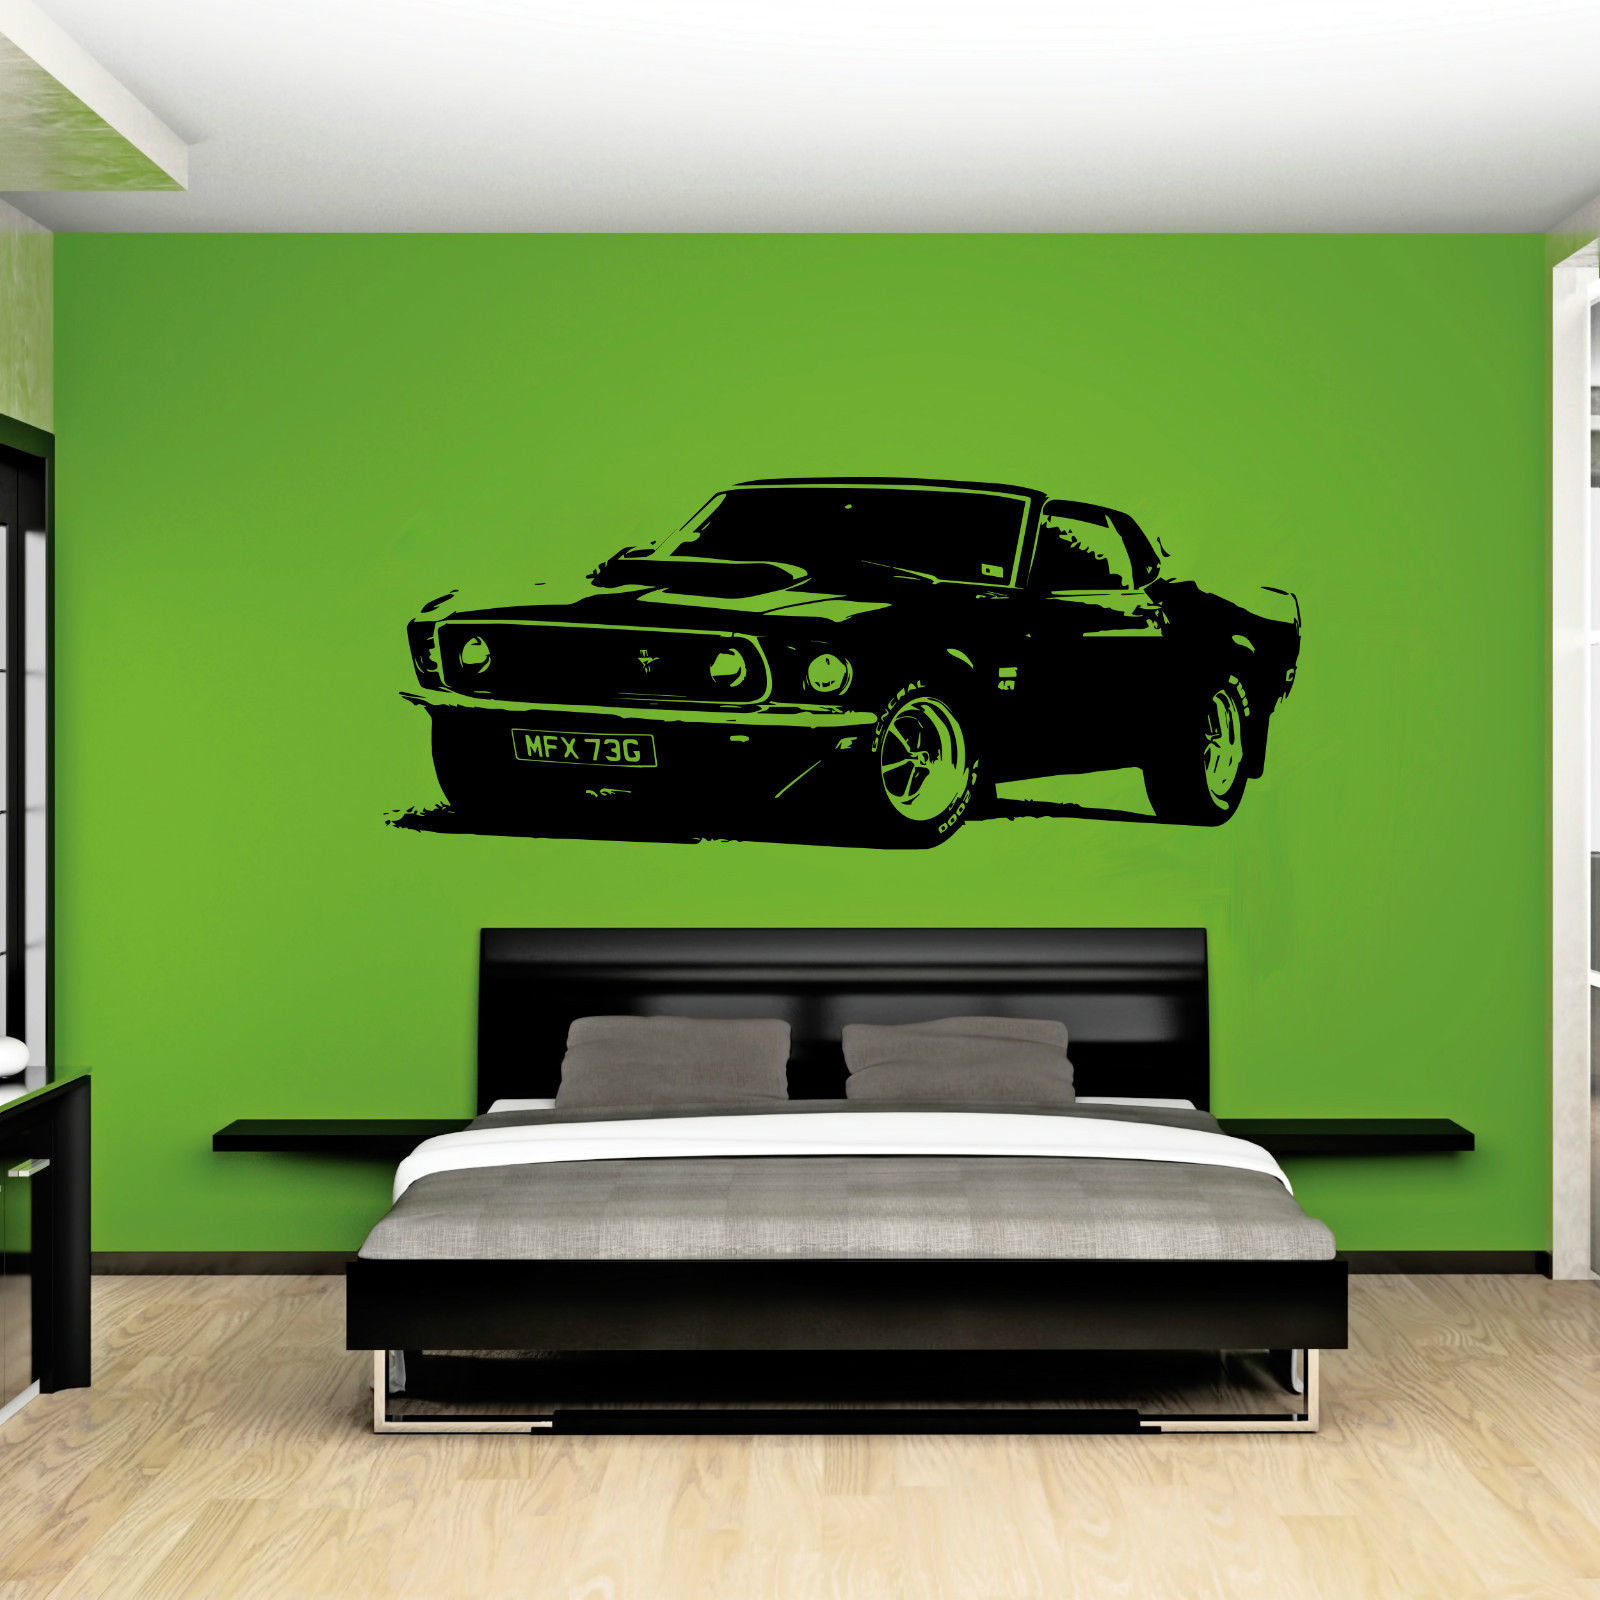 W211 Xl Large Car Ford Mustang 1969 Muscle Free Squeegee Wall Art Decal Sticker Home Decor In